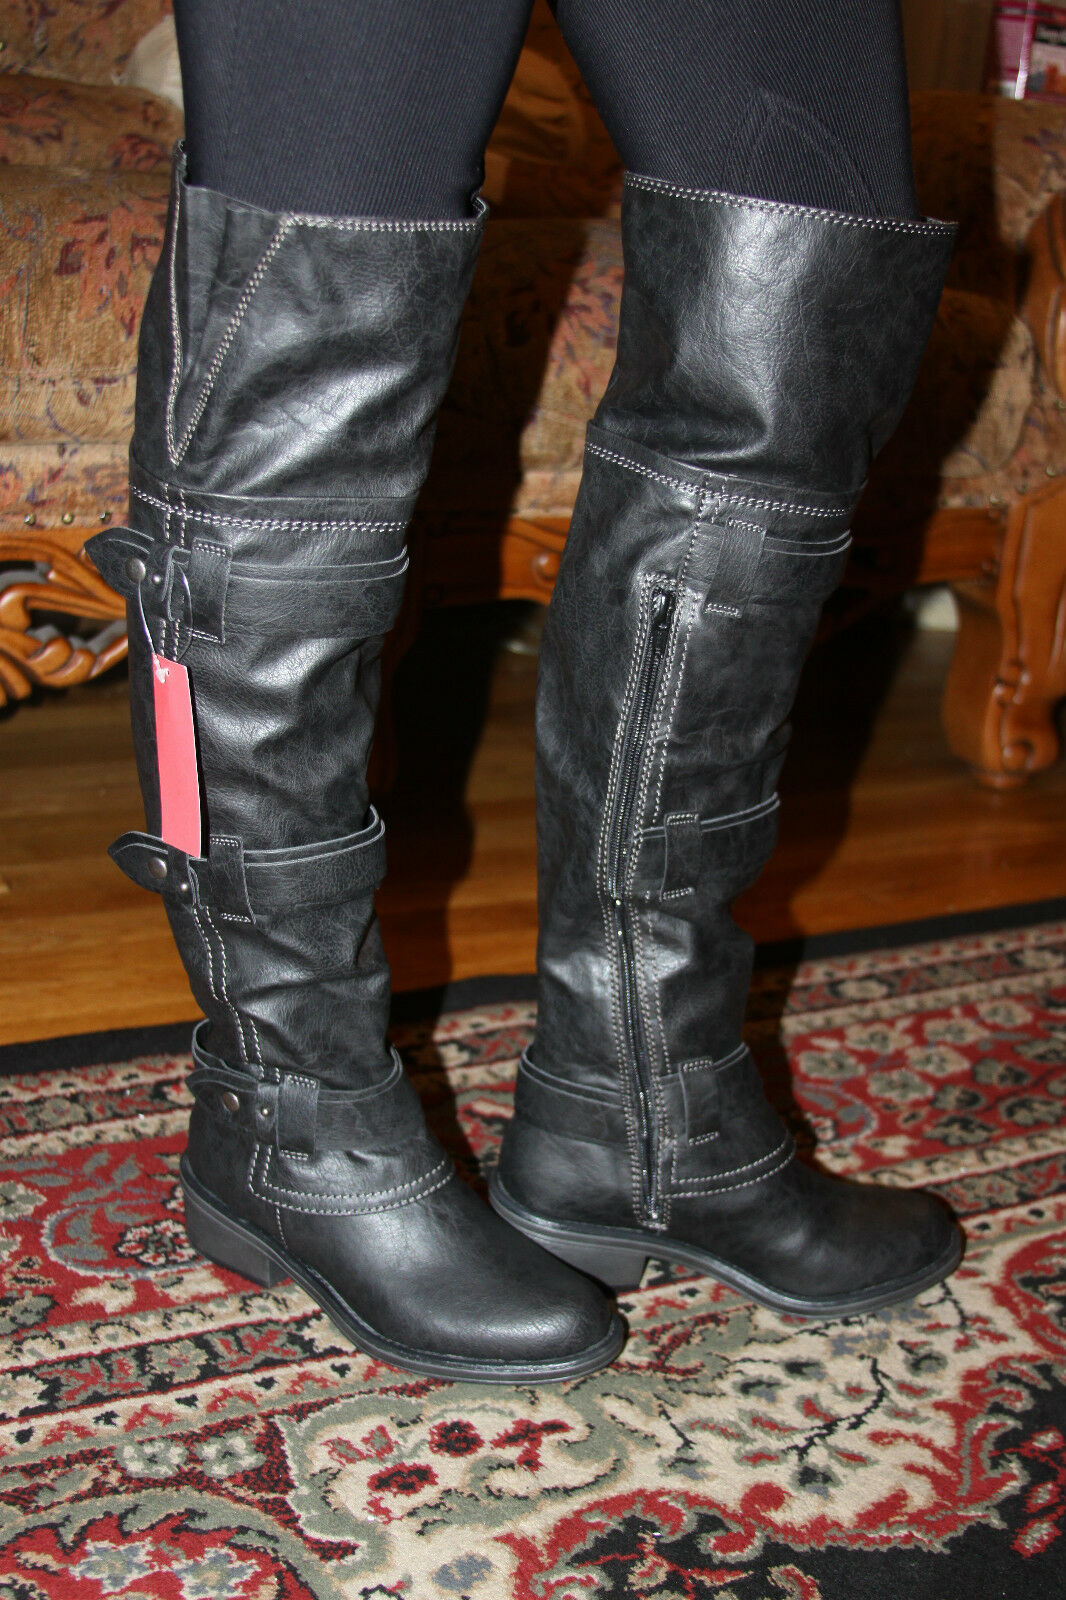 AMERICAN RAG DUKEE OVER THE KNEE BLACK BOOTS SIZE 6M